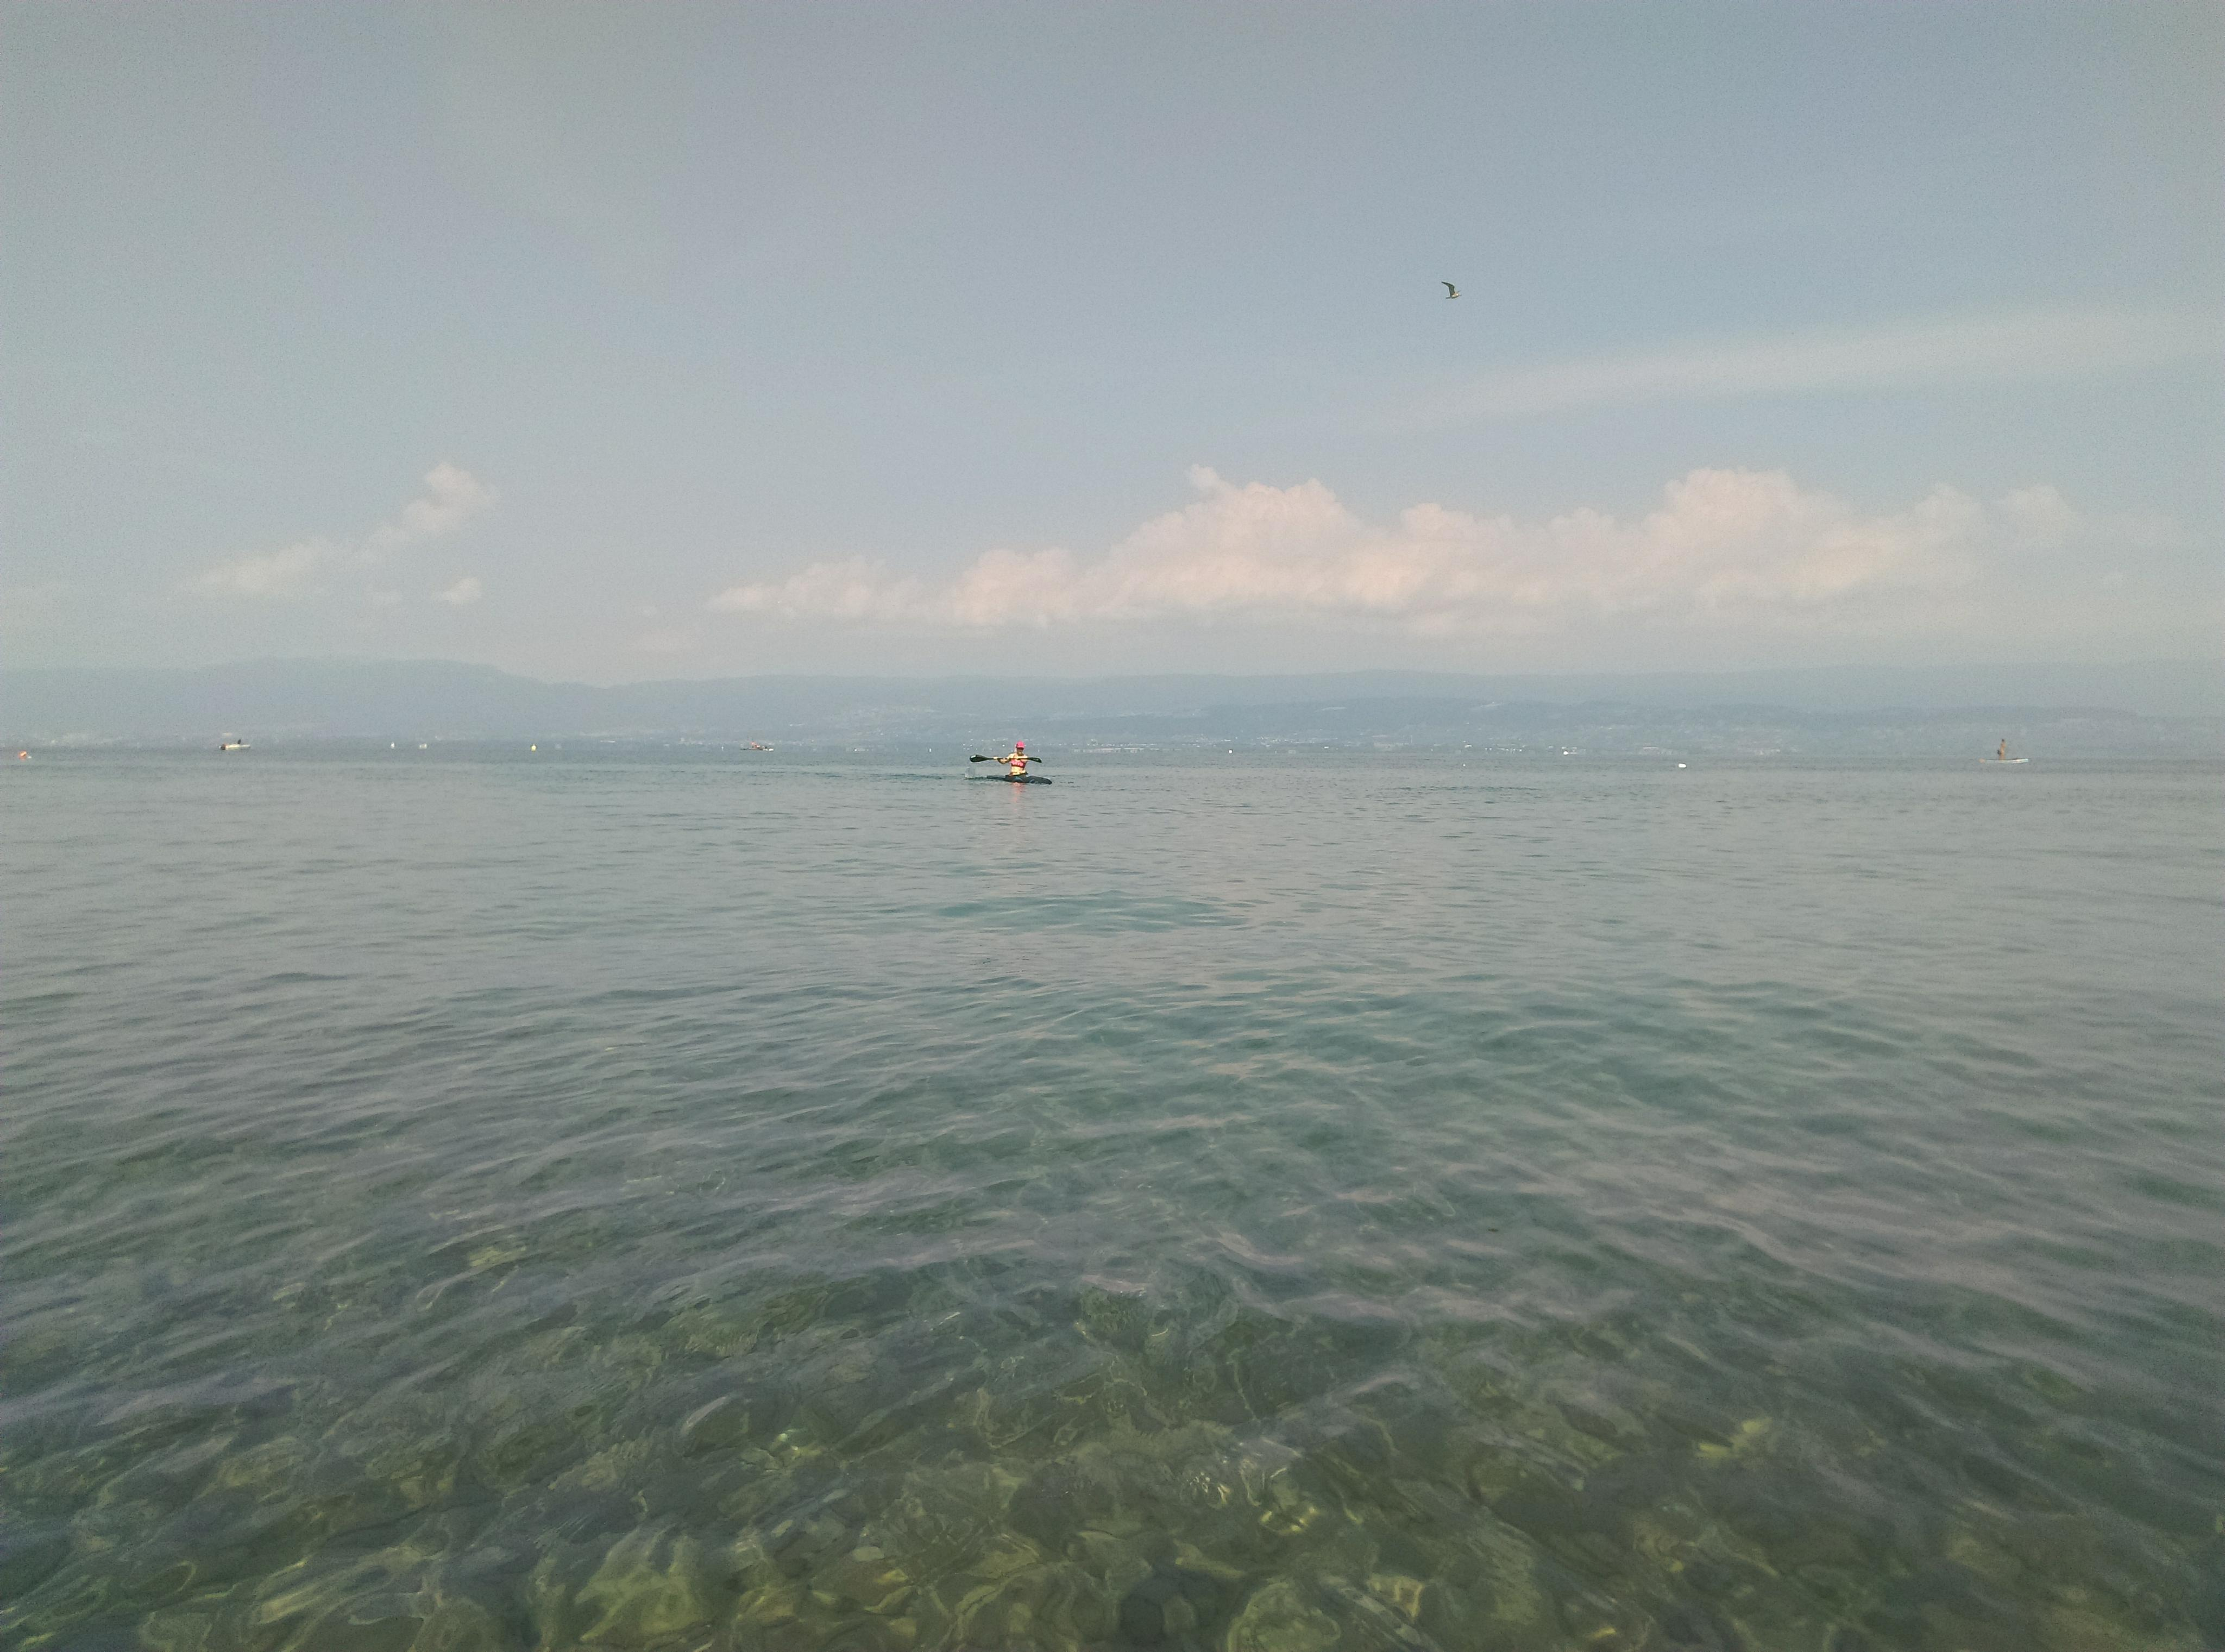 LacLeman3